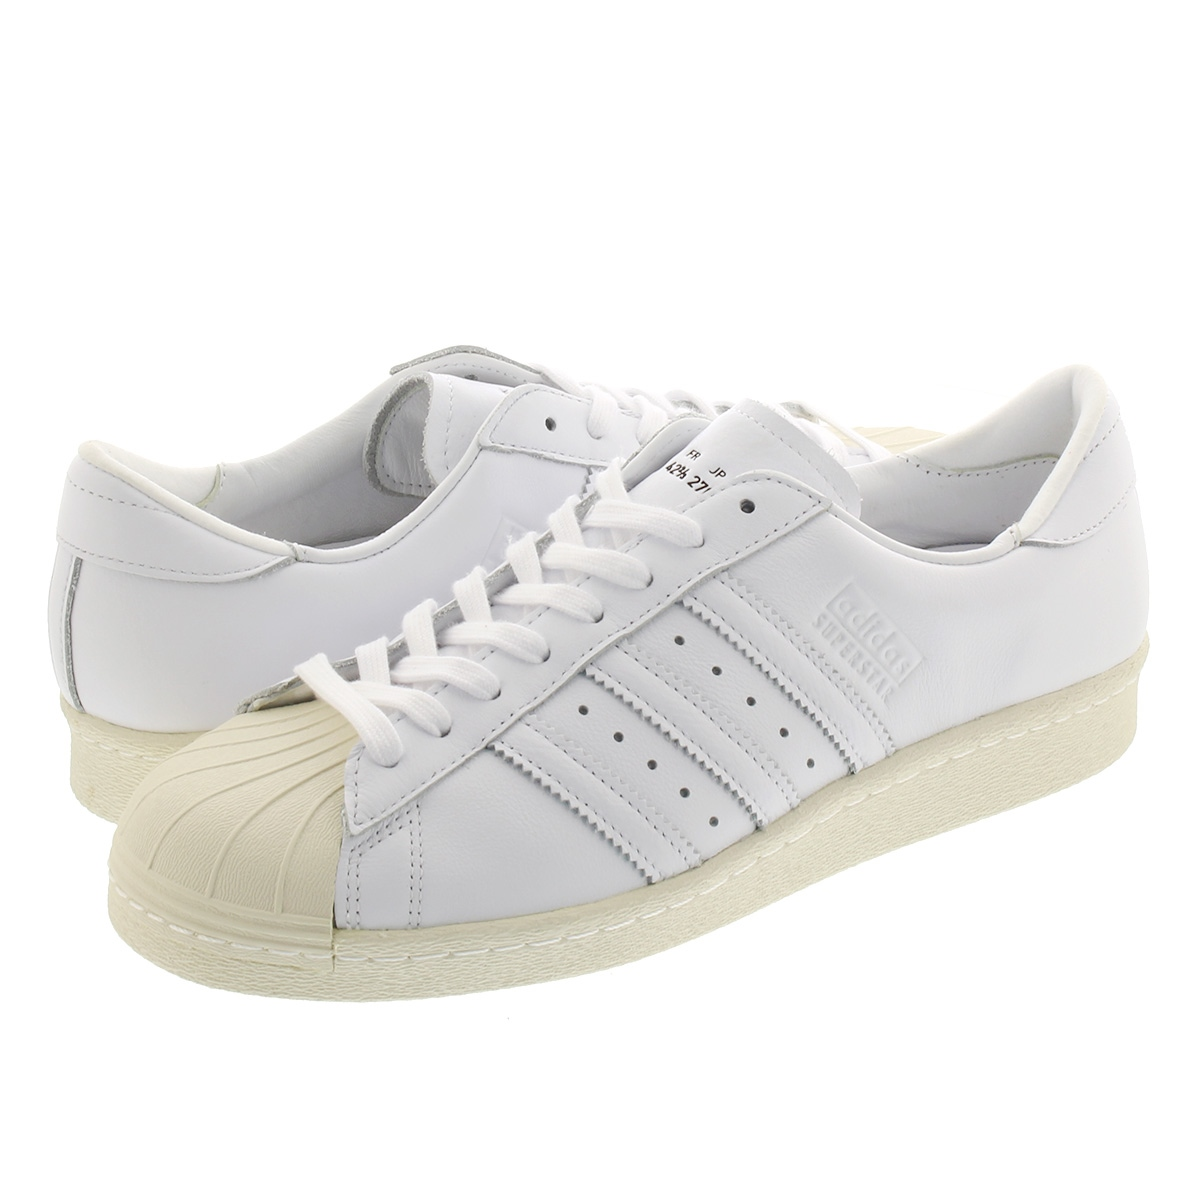 adidas SUPERSTAR 80s RECON Adidas superstar 80s リーコン RUNNING WHITERUNNING WHITEOFF WHITE ee7392